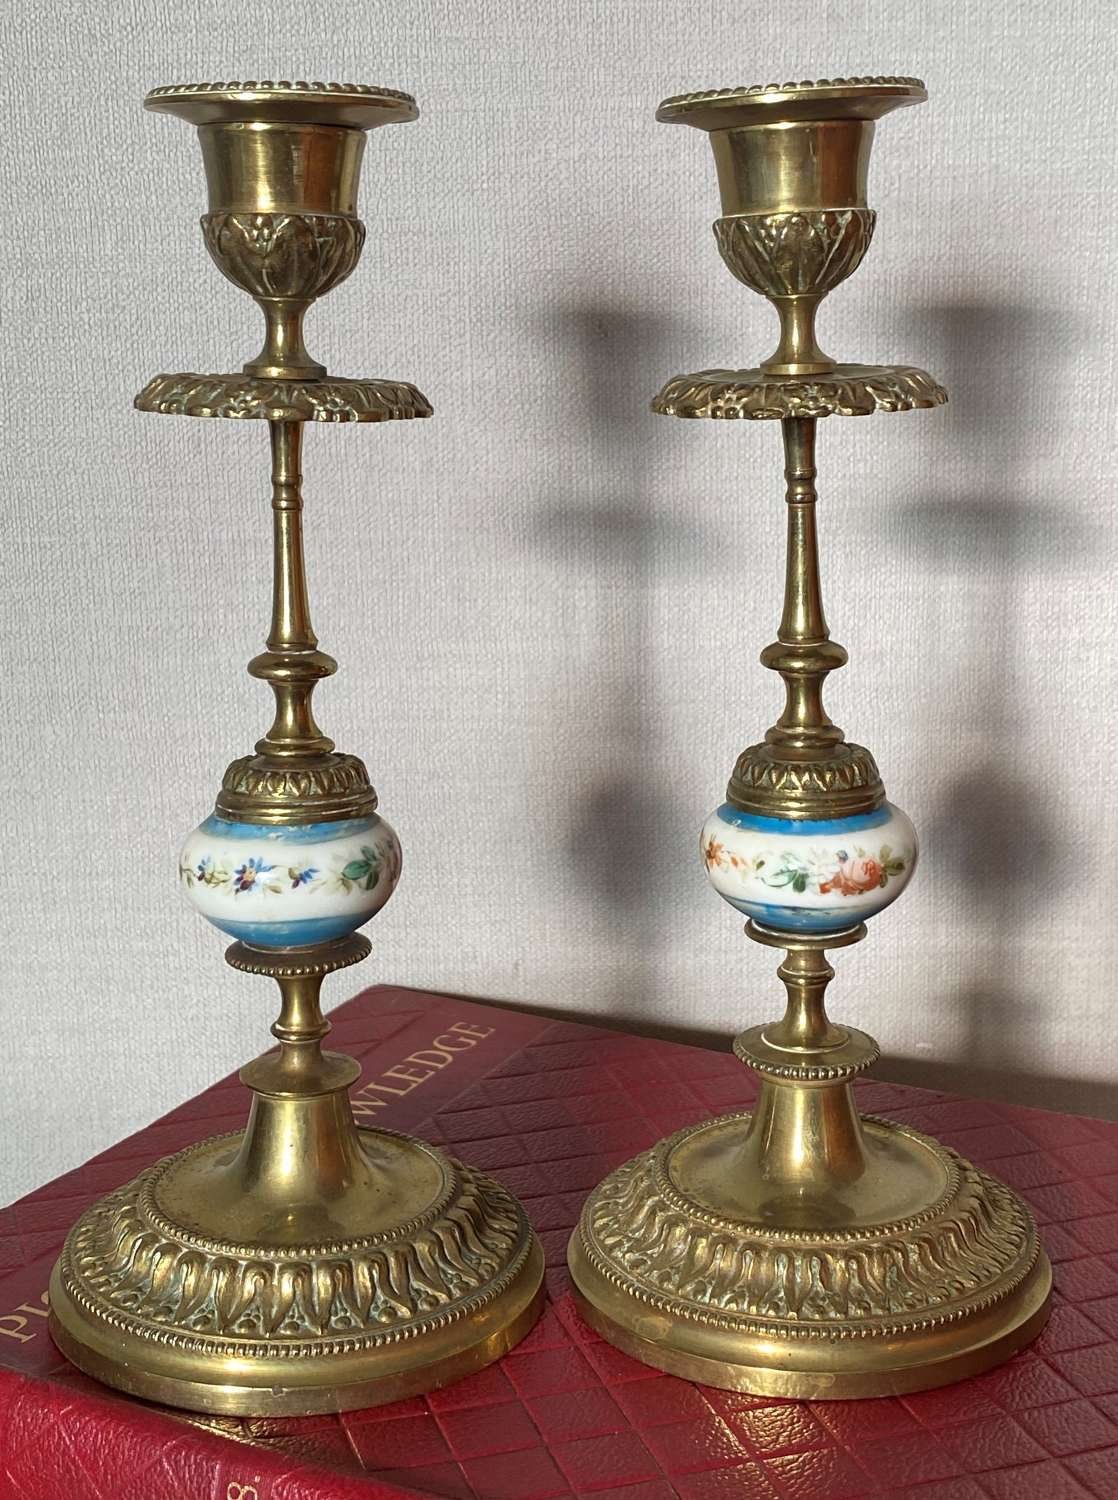 19th Century French Porcelain Mounted Gilt Brass Candlesticks